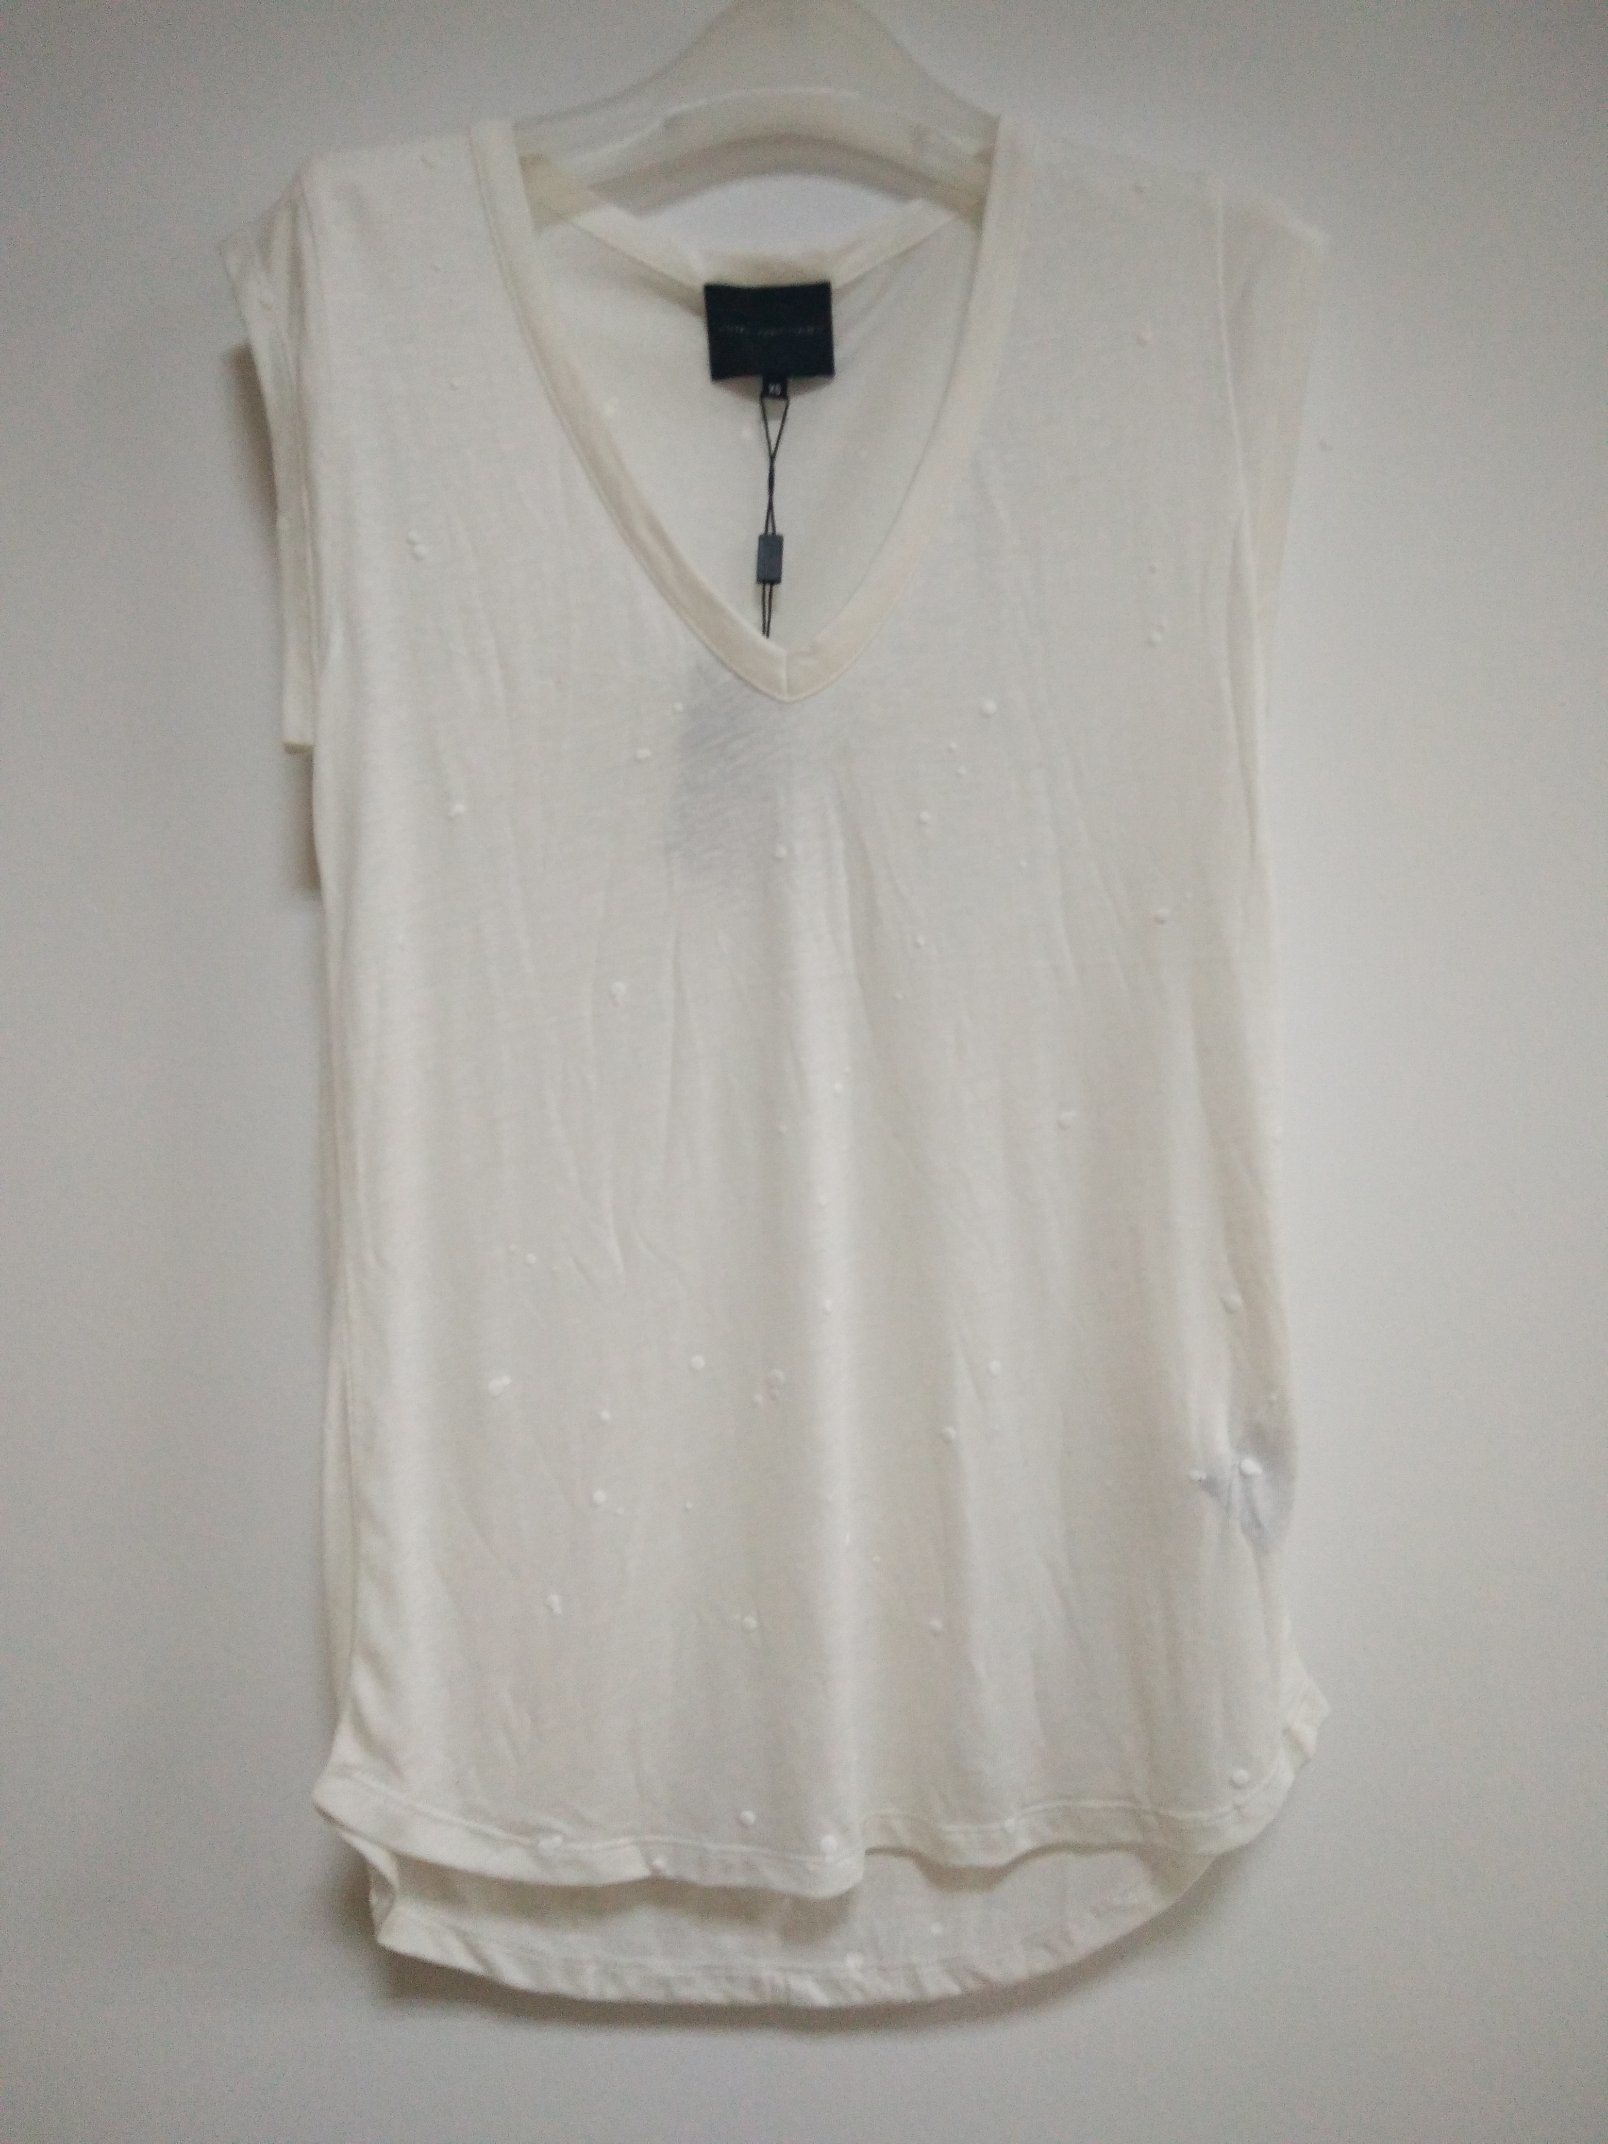 Women′s T-Shirt for Lady, White, Sleeveless, V Neck